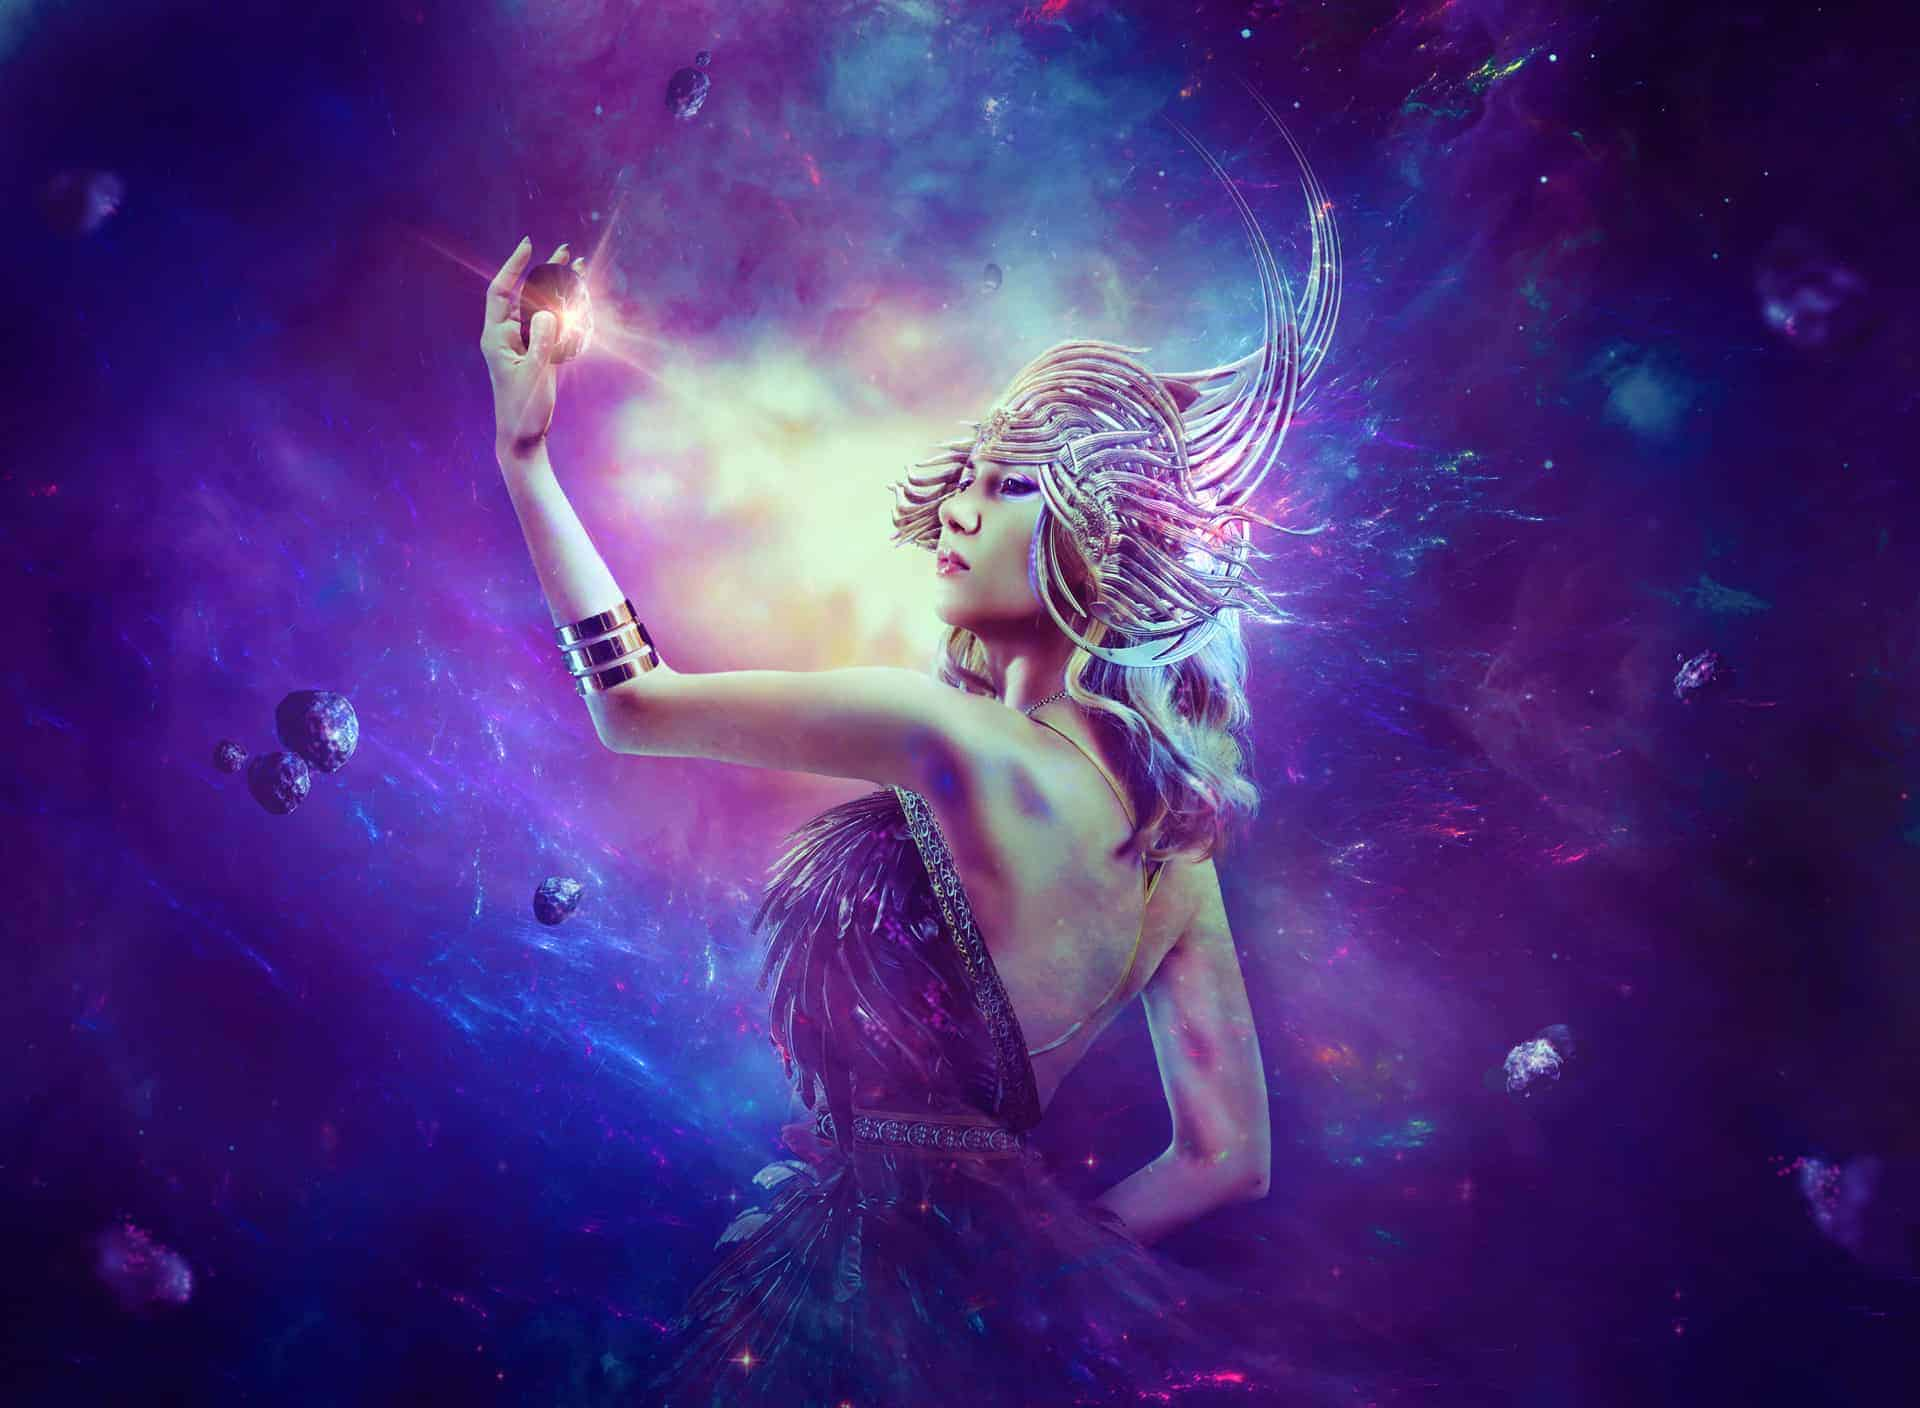 How to Create a Fantasy Woman Photo Manipulation with Adobe Photoshop